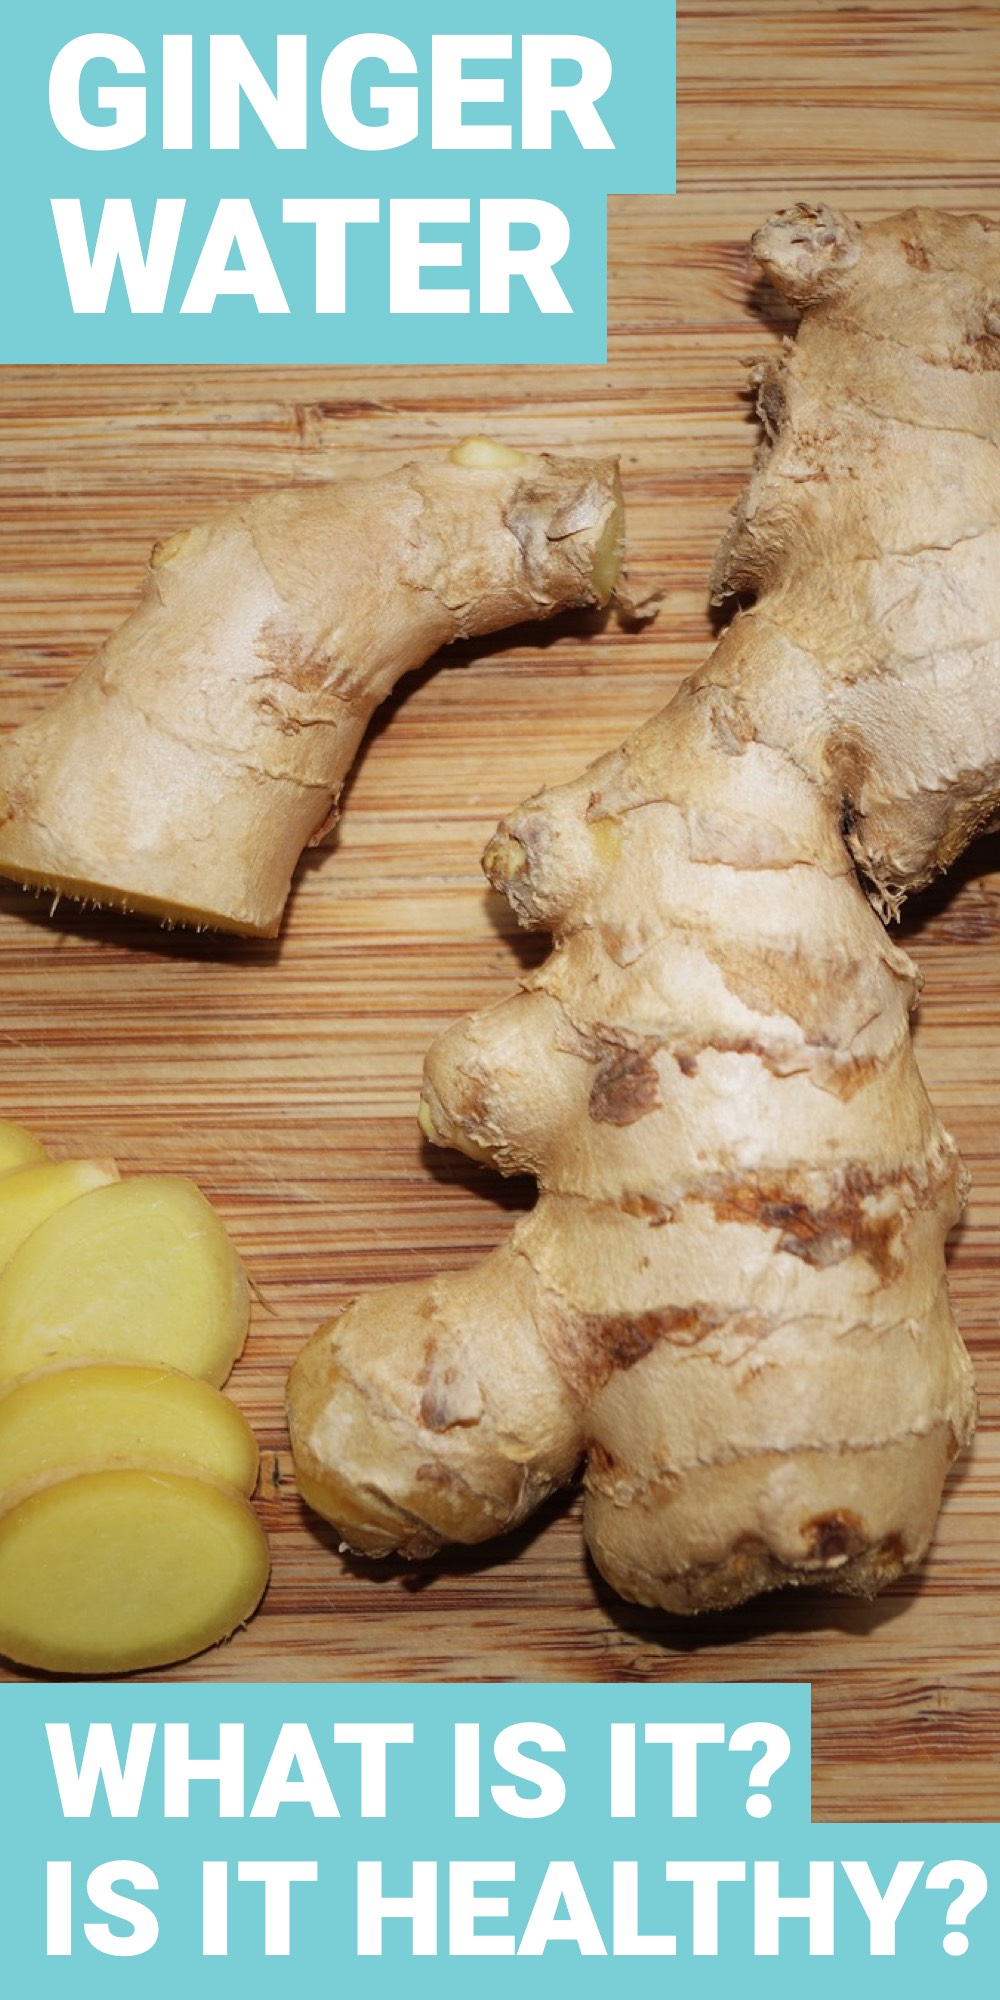 Drinking ginger water will help your health more than you know. Find out the ginger water benefits here.